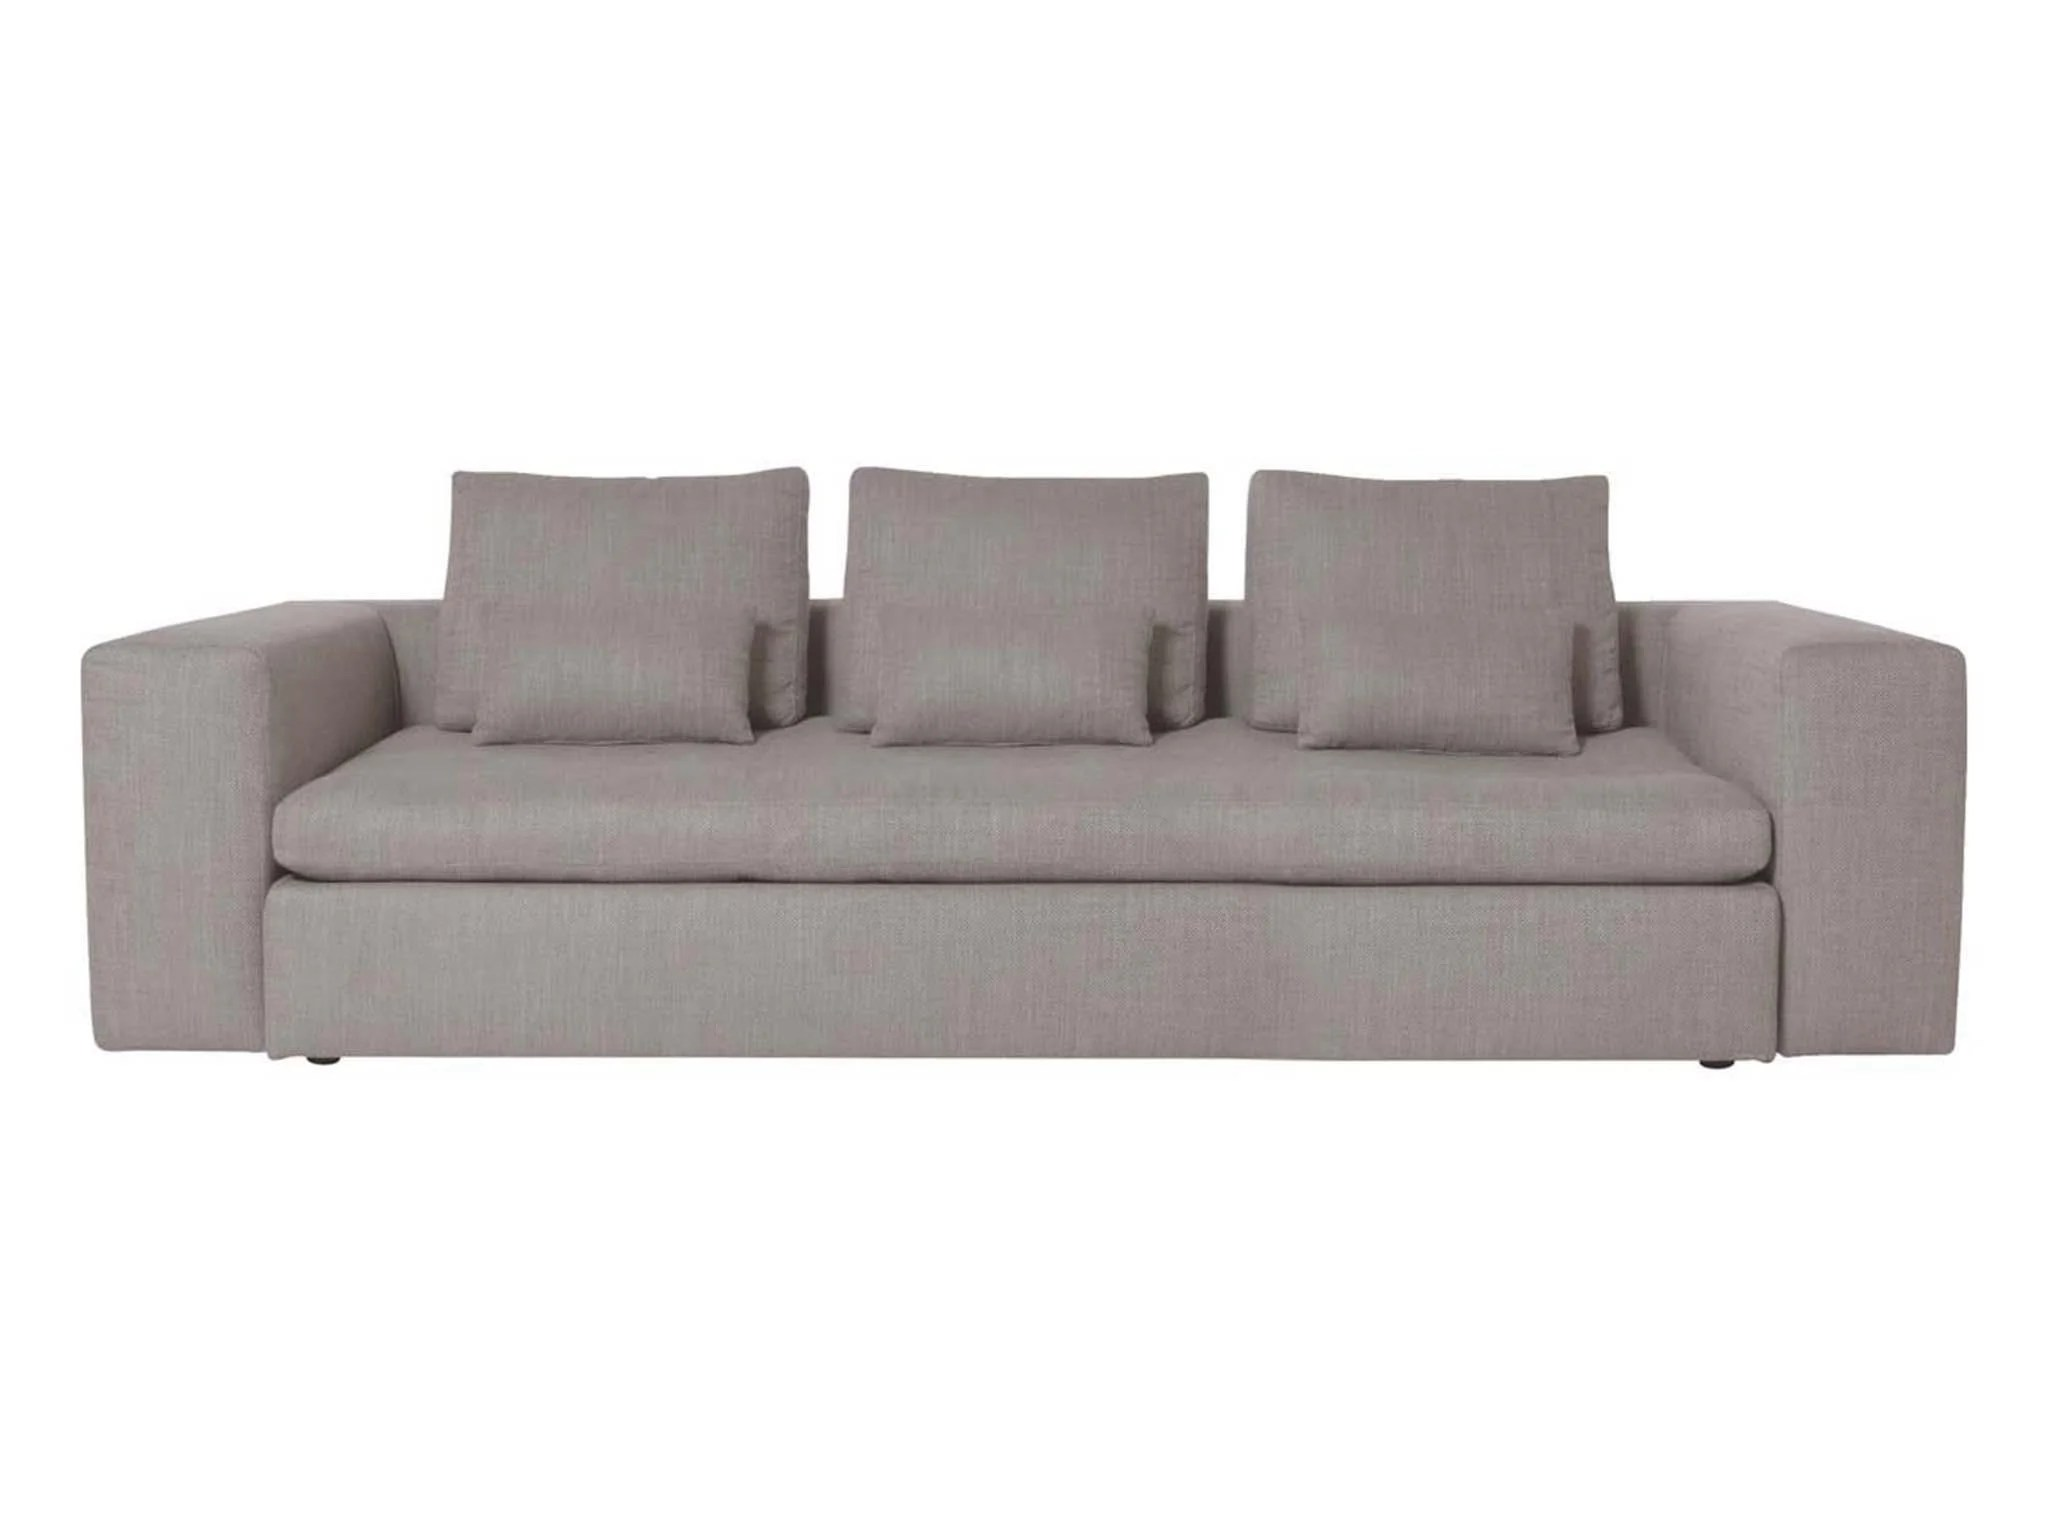 willow and hall sofa reviews fabric cleaner uk 8 best sofas with storage the independent if you are more minimalist than clutter collector then this low key from habitat is a treat for eyes it looks laid back effortlessly cool on